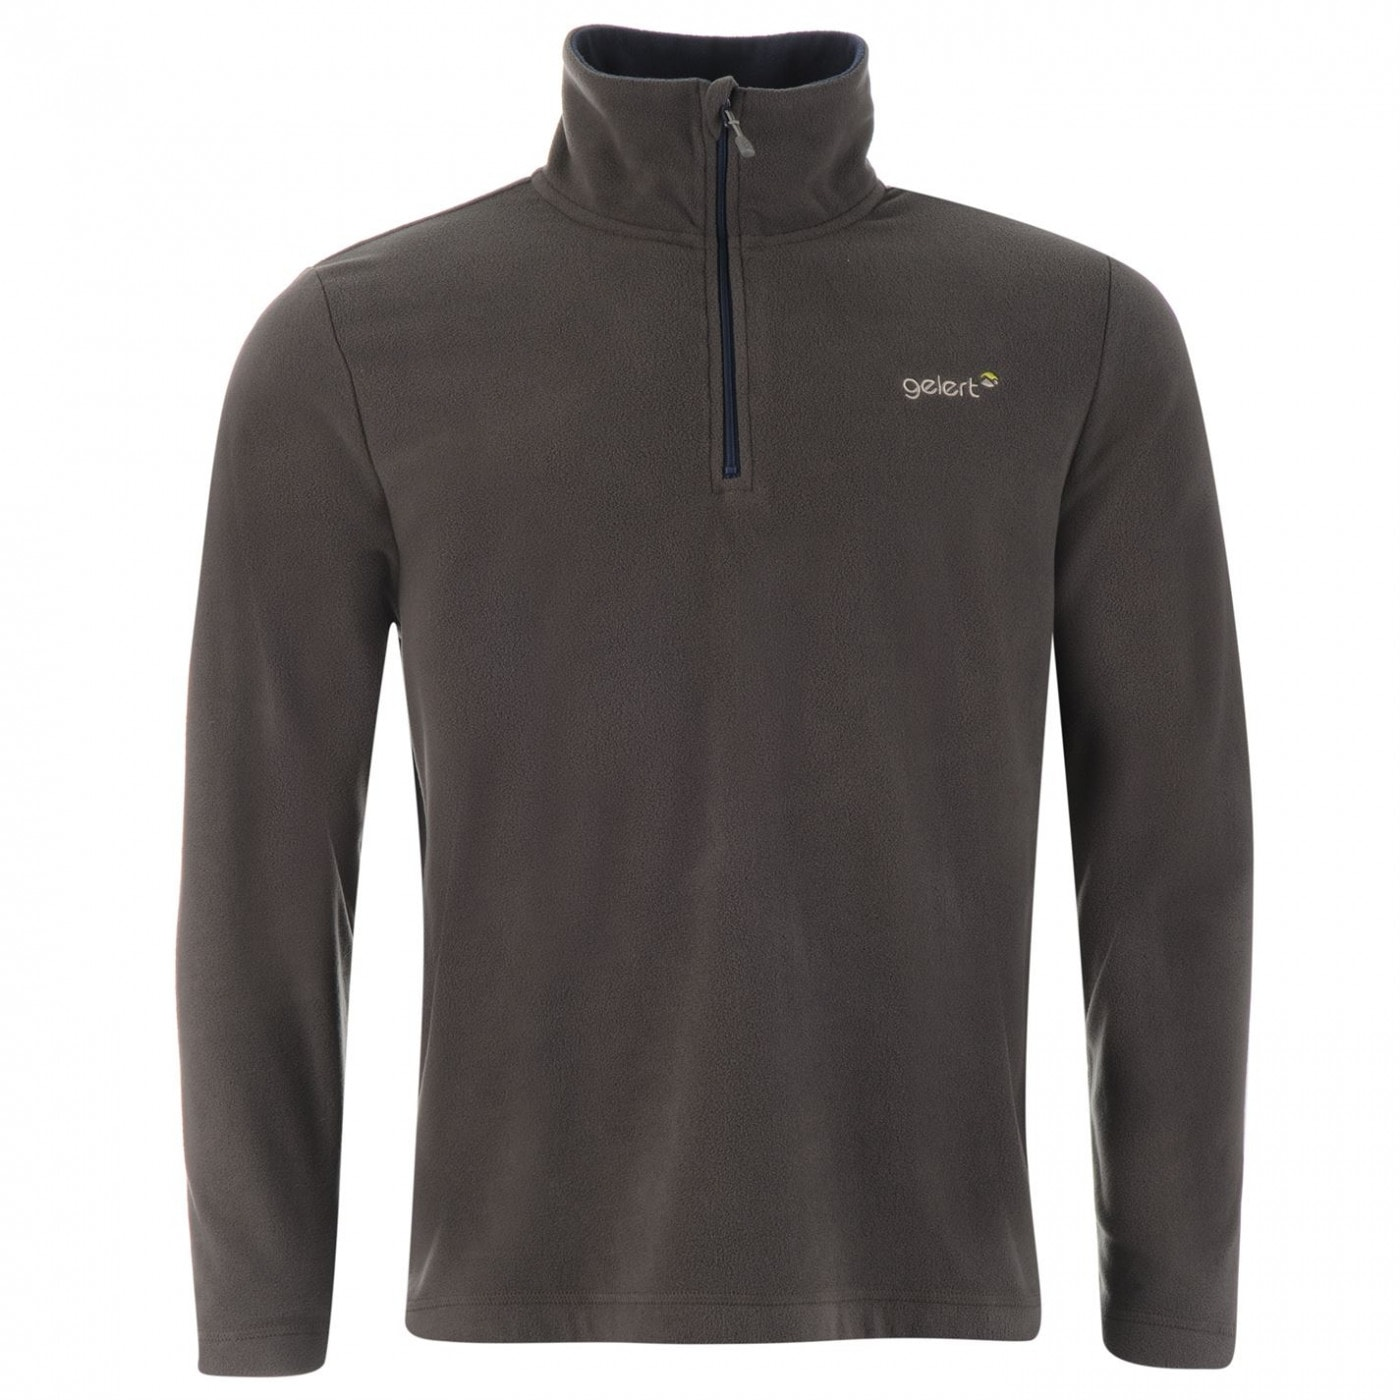 Gelert Atlantis Micro Fleece Mens